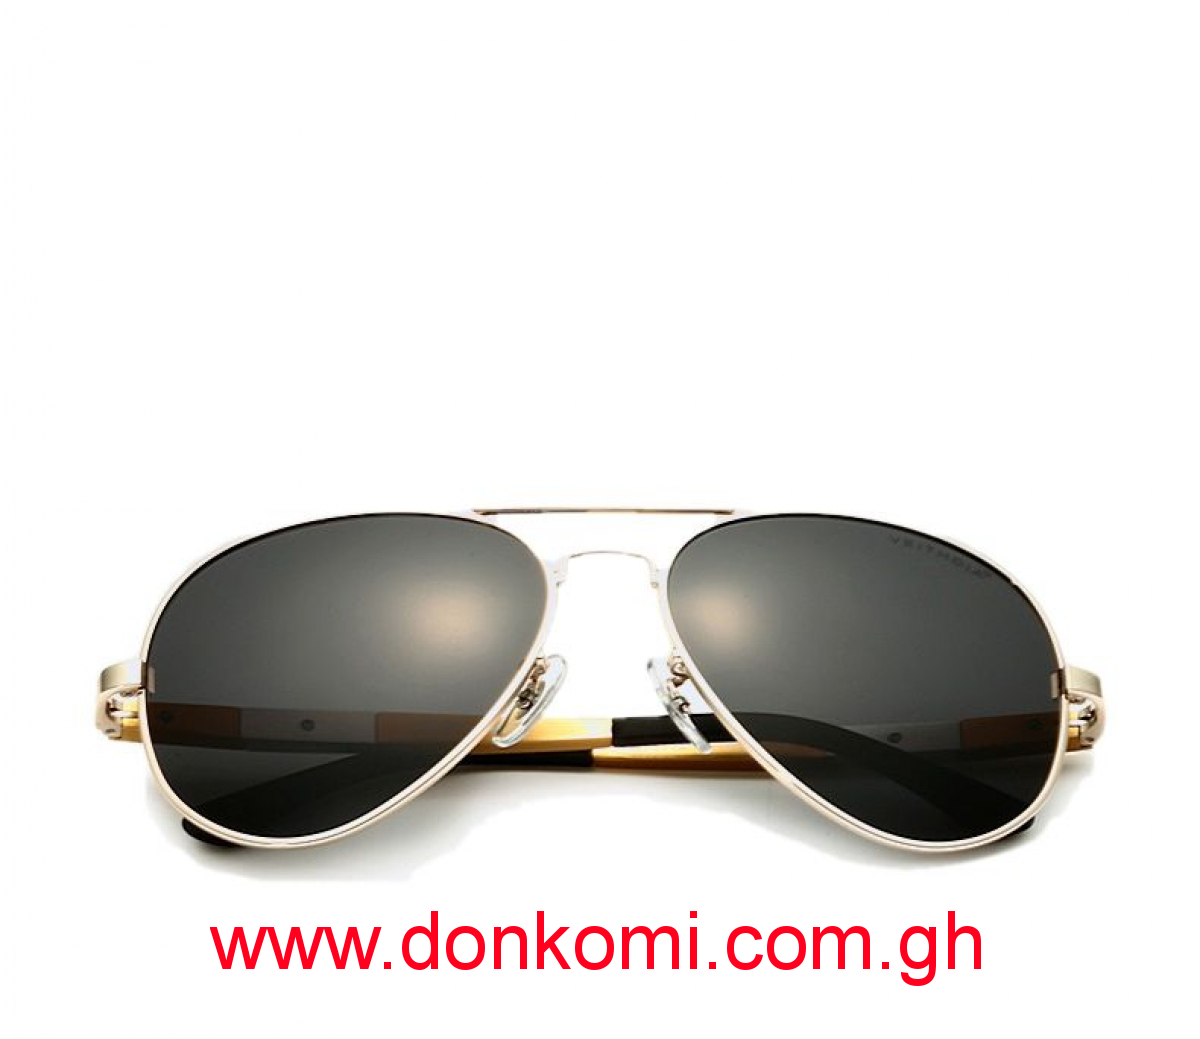 VEITHDIA H707 HD SUNGLASSES - Gold, Silver